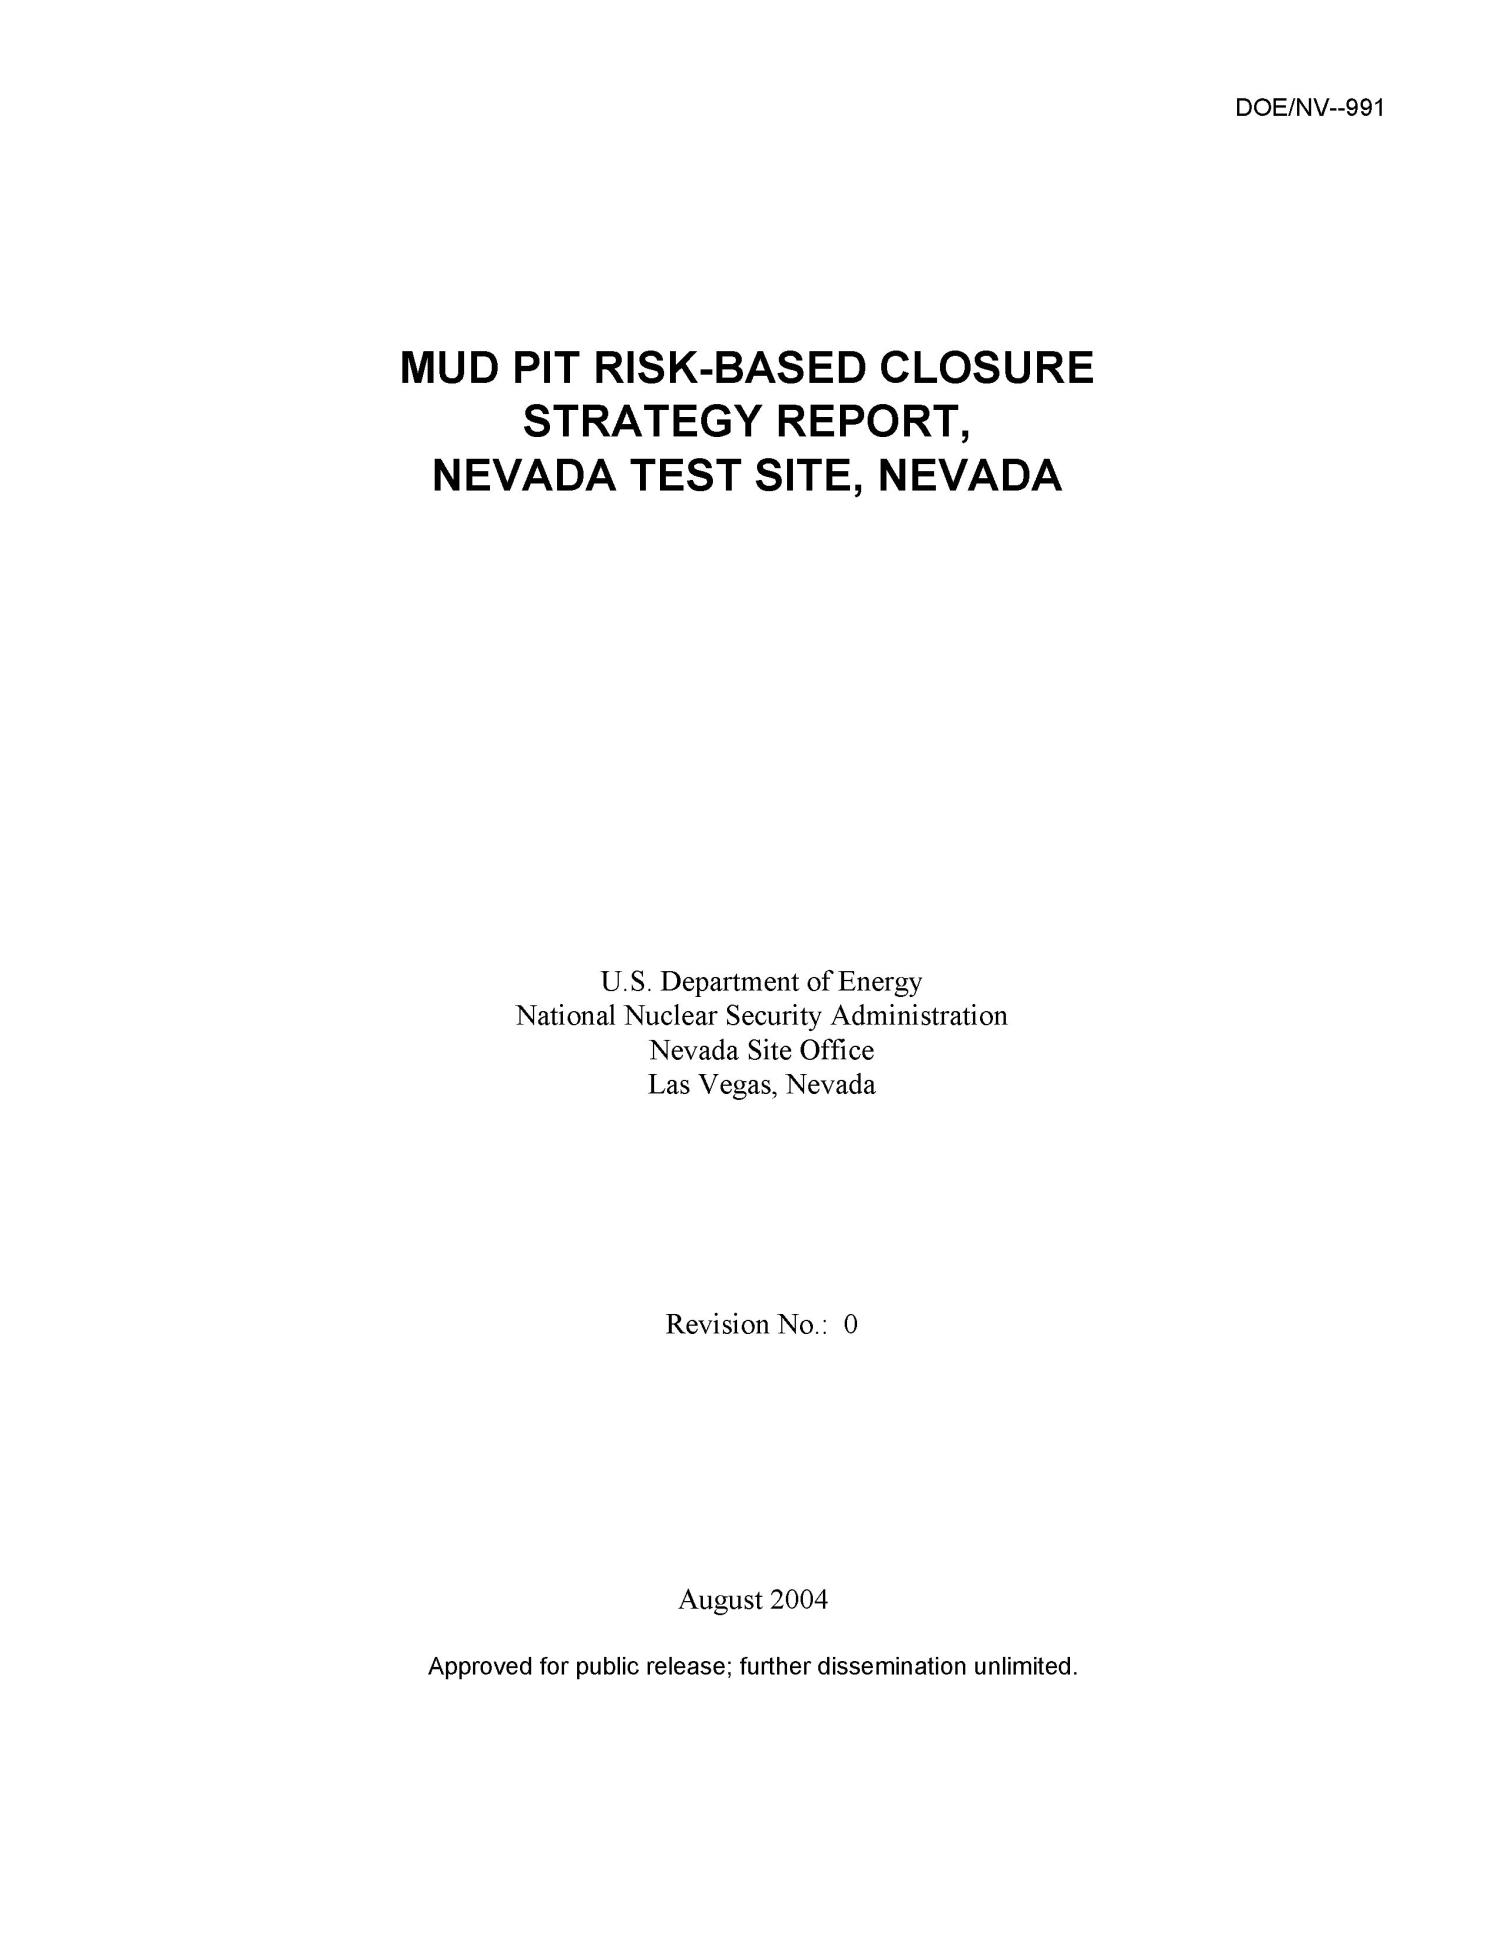 Mud Pit Risk-Based Closure Strategy Report, Nevada Test Site, Nevada, Revision 0                                                                                                      [Sequence #]: 3 of 631